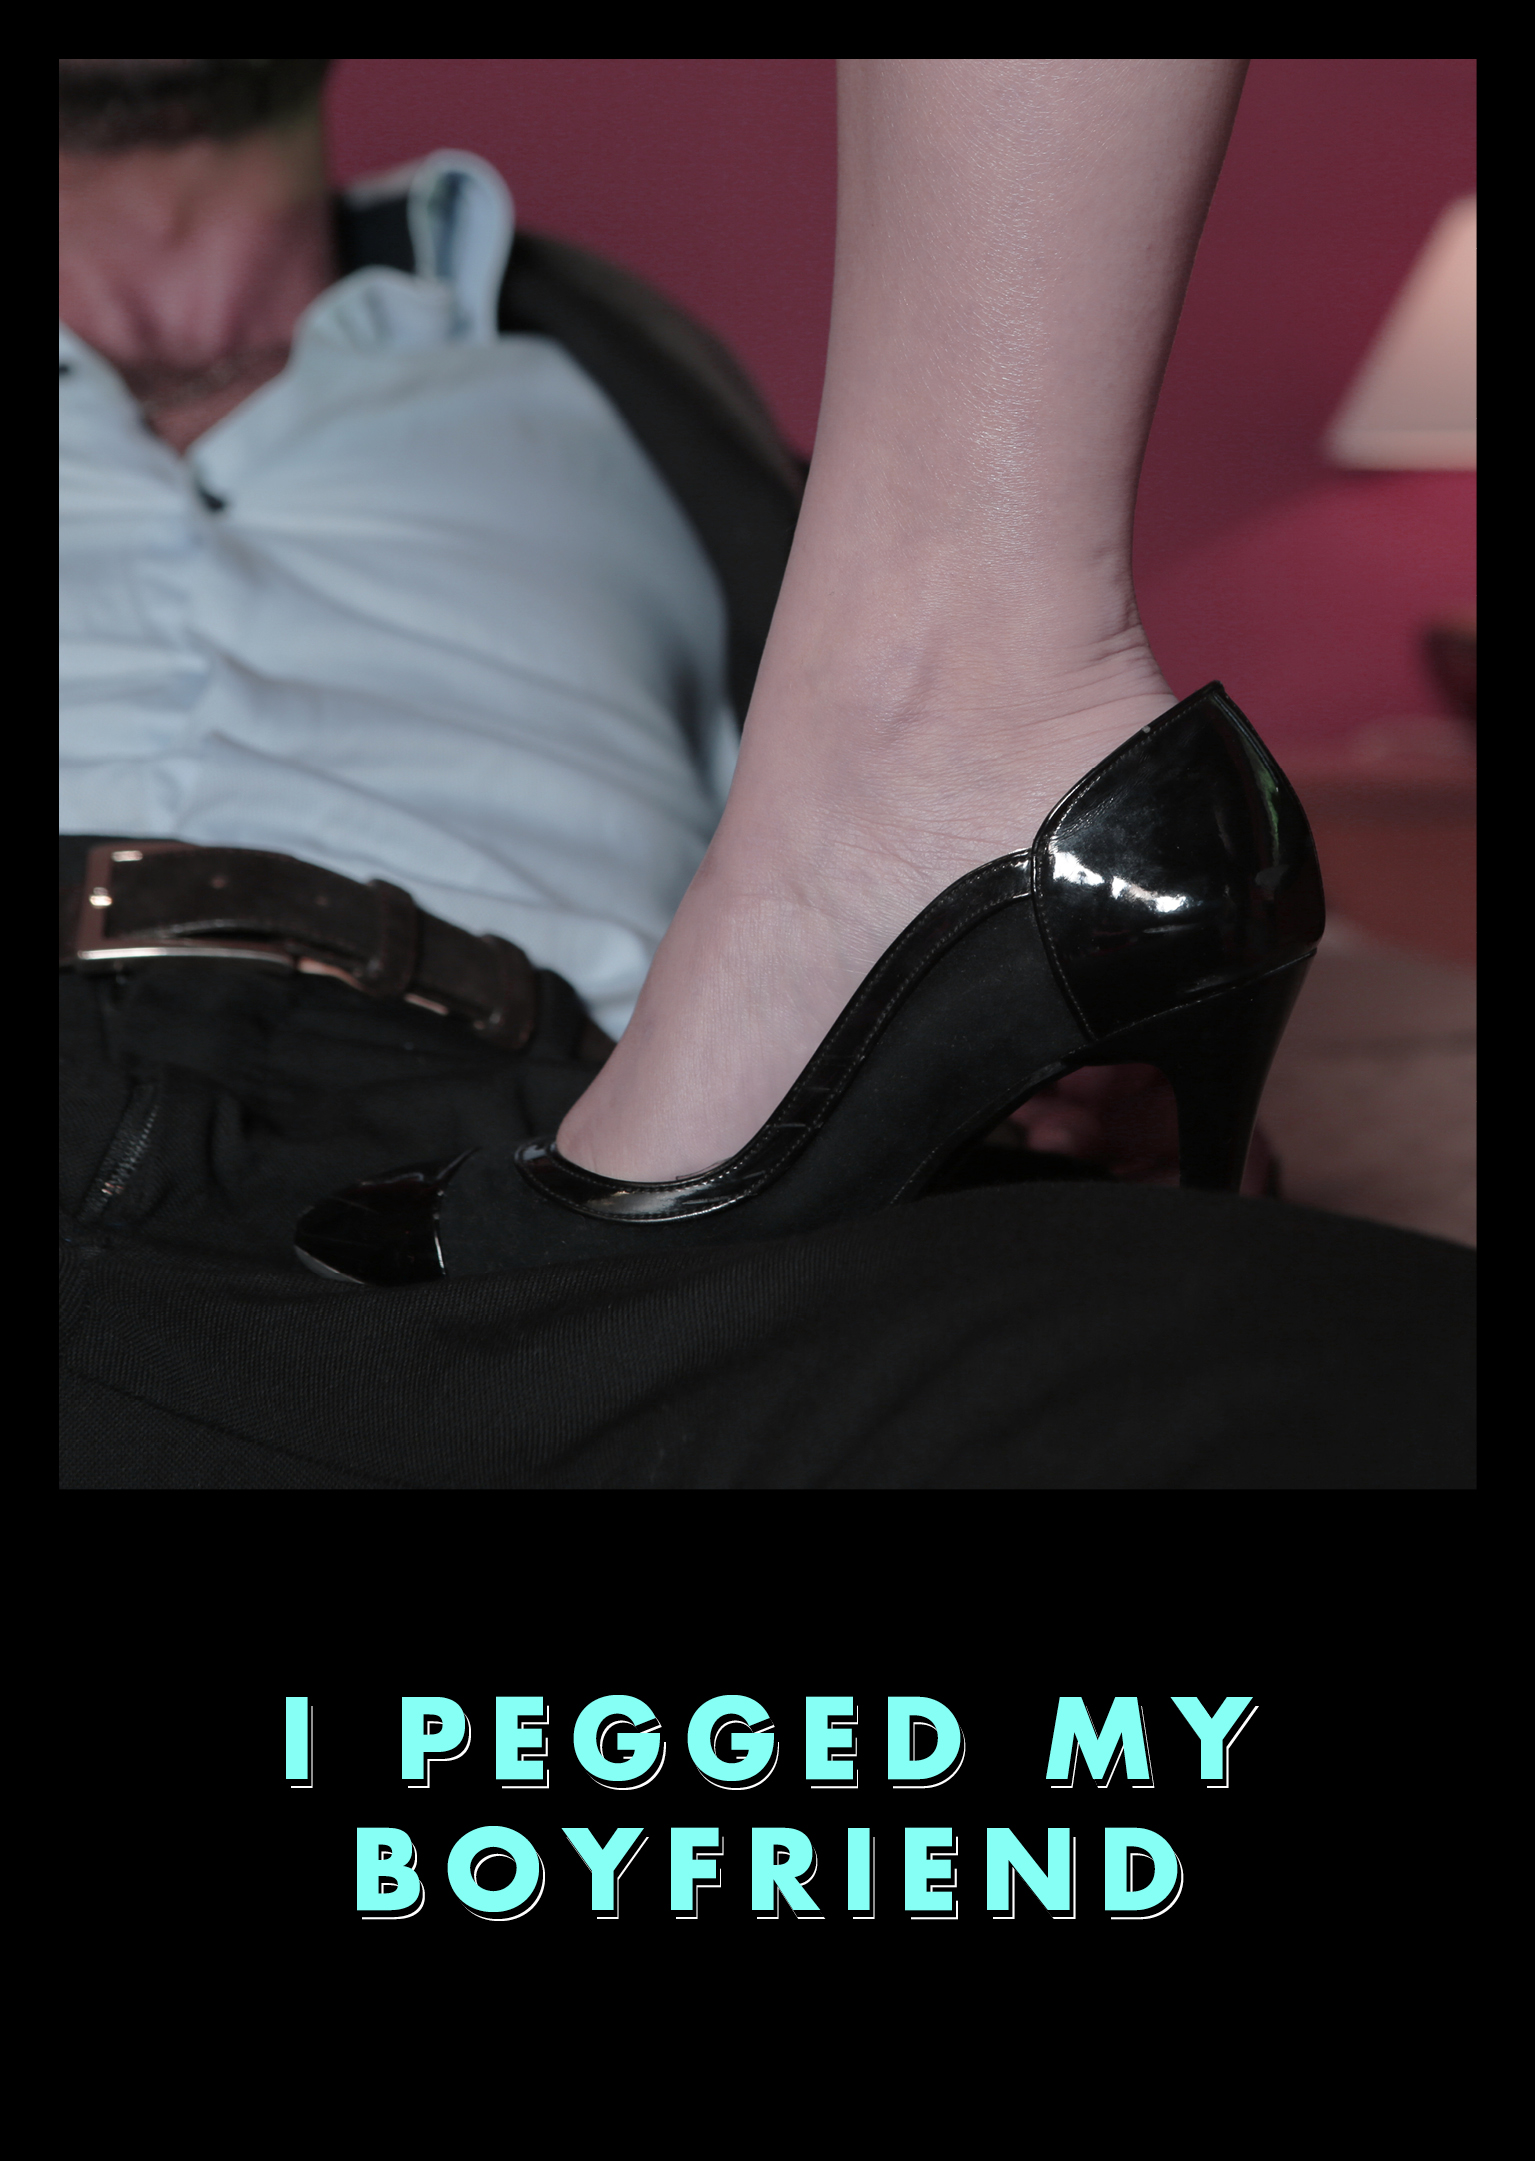 Xconfessions By Erika Lust, I Pegged My Boyfriend